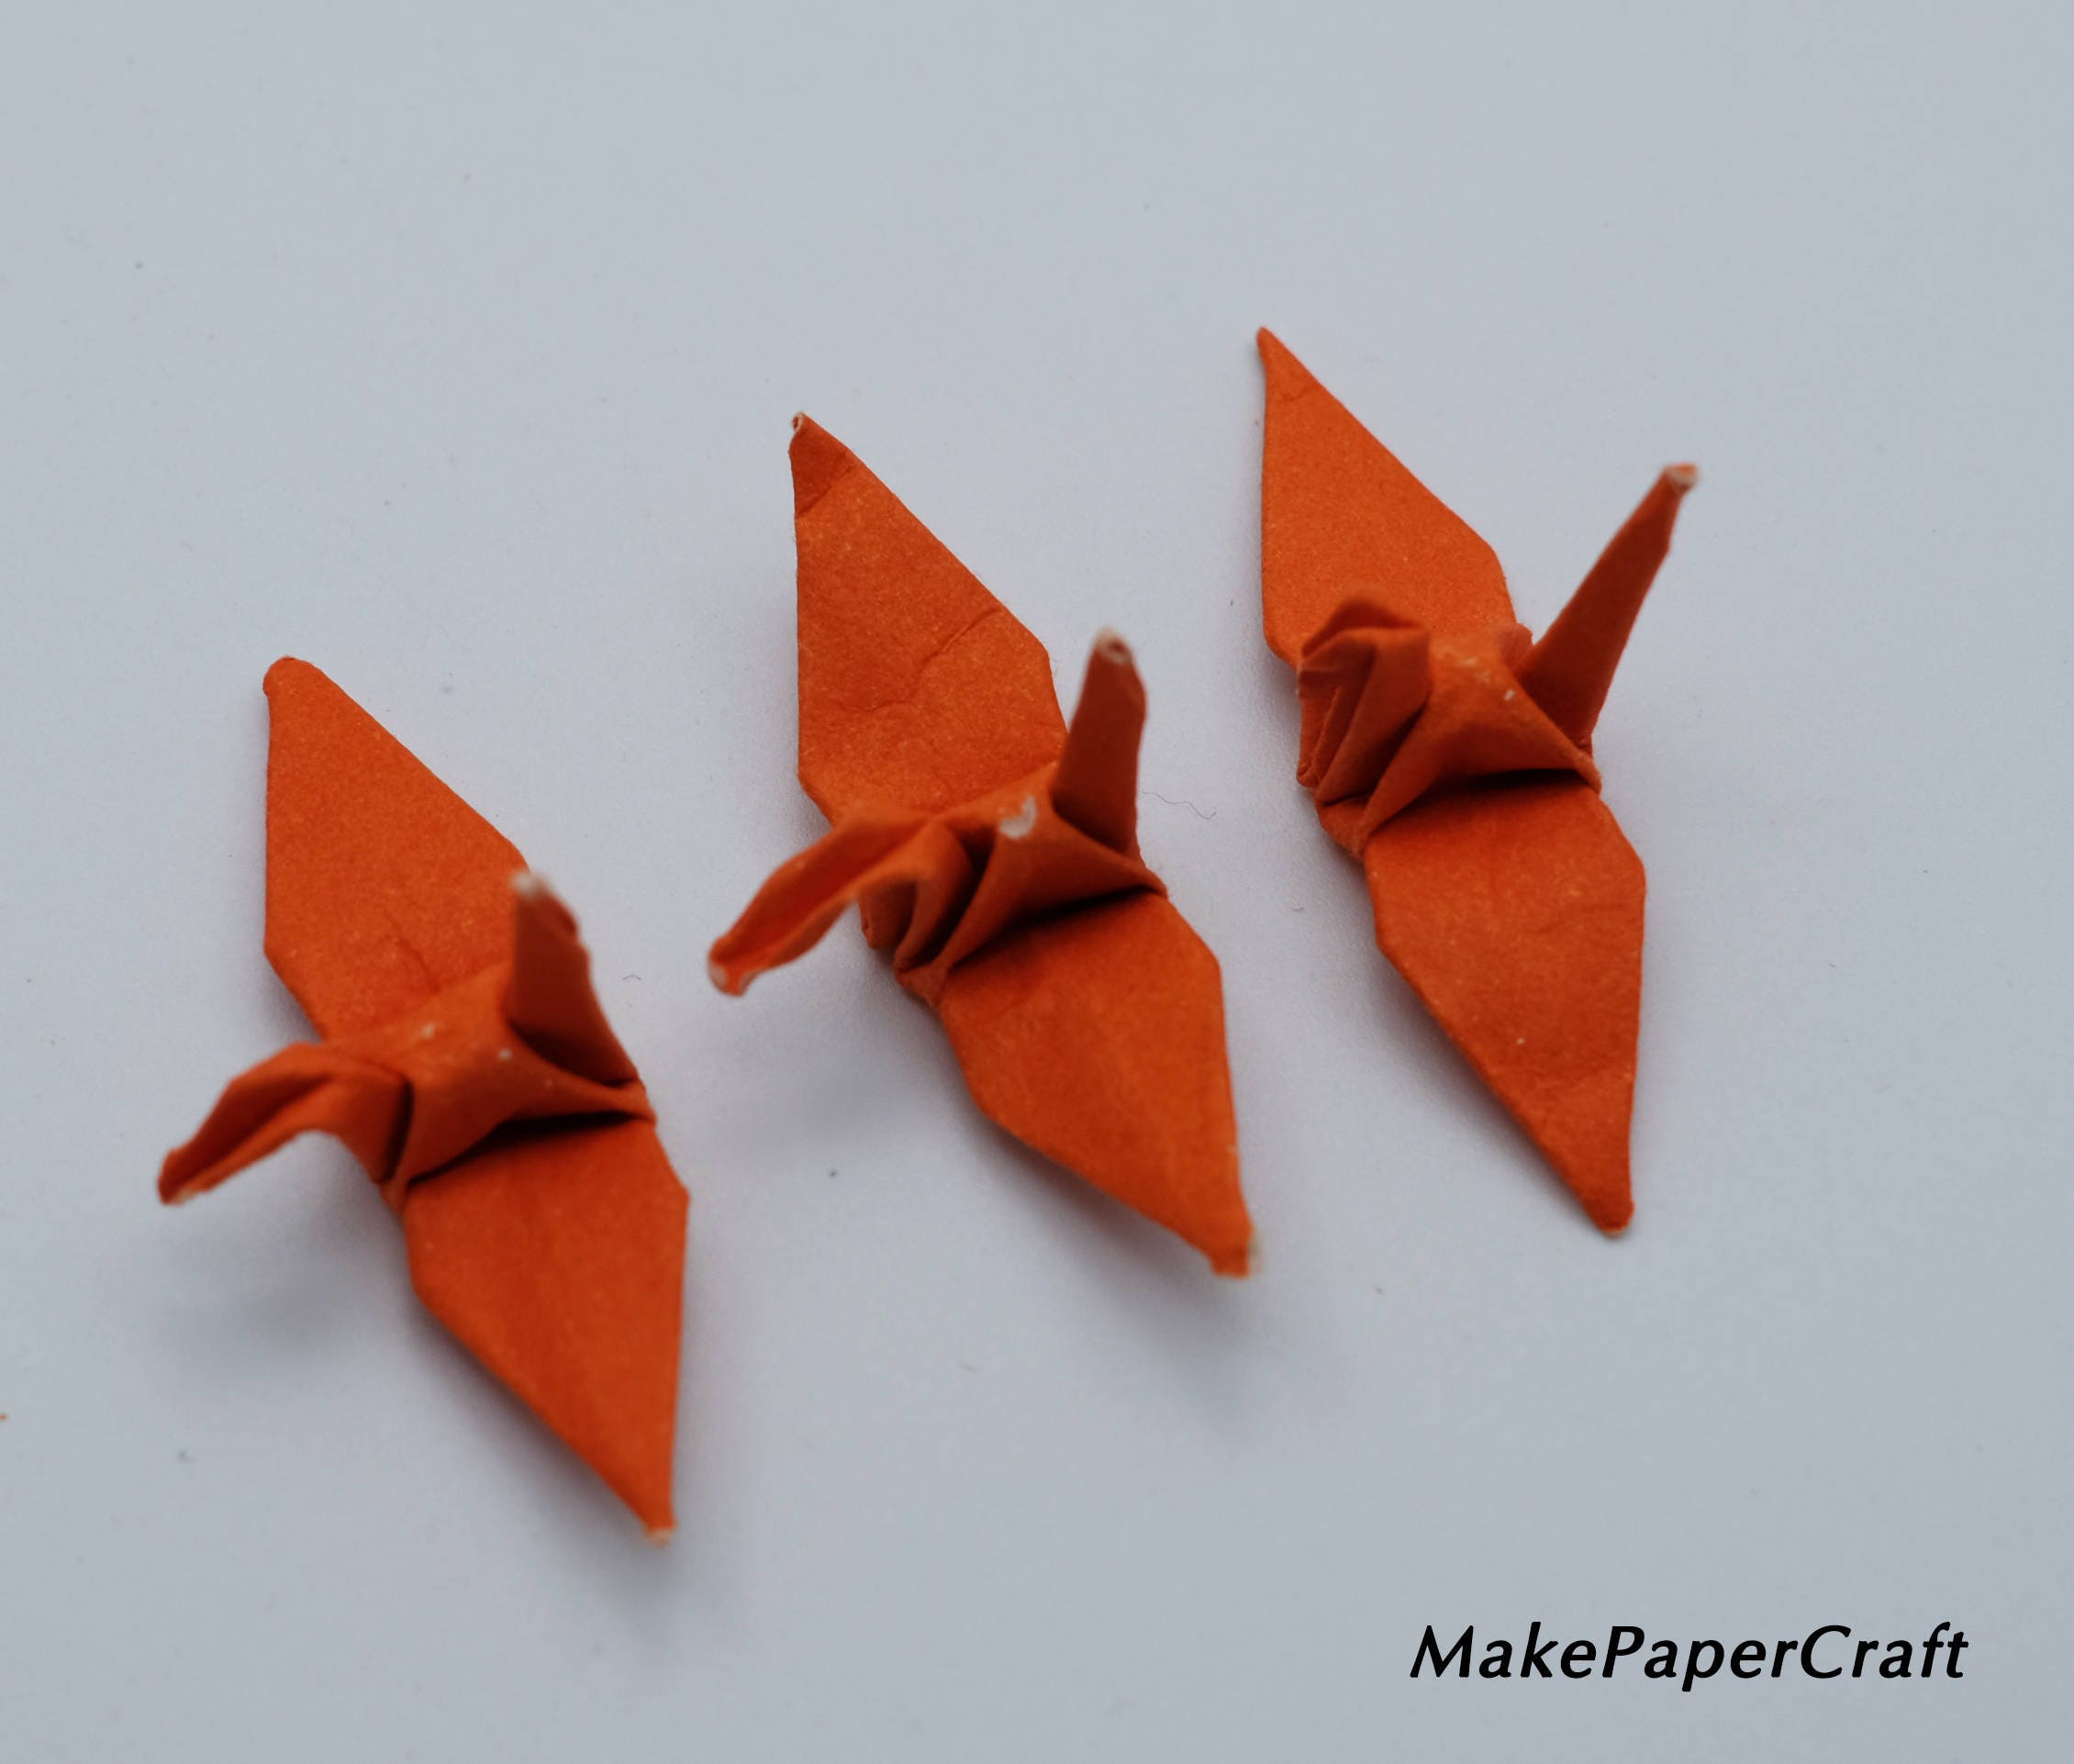 Matching earrings and necklace set in light orange and white origami paper